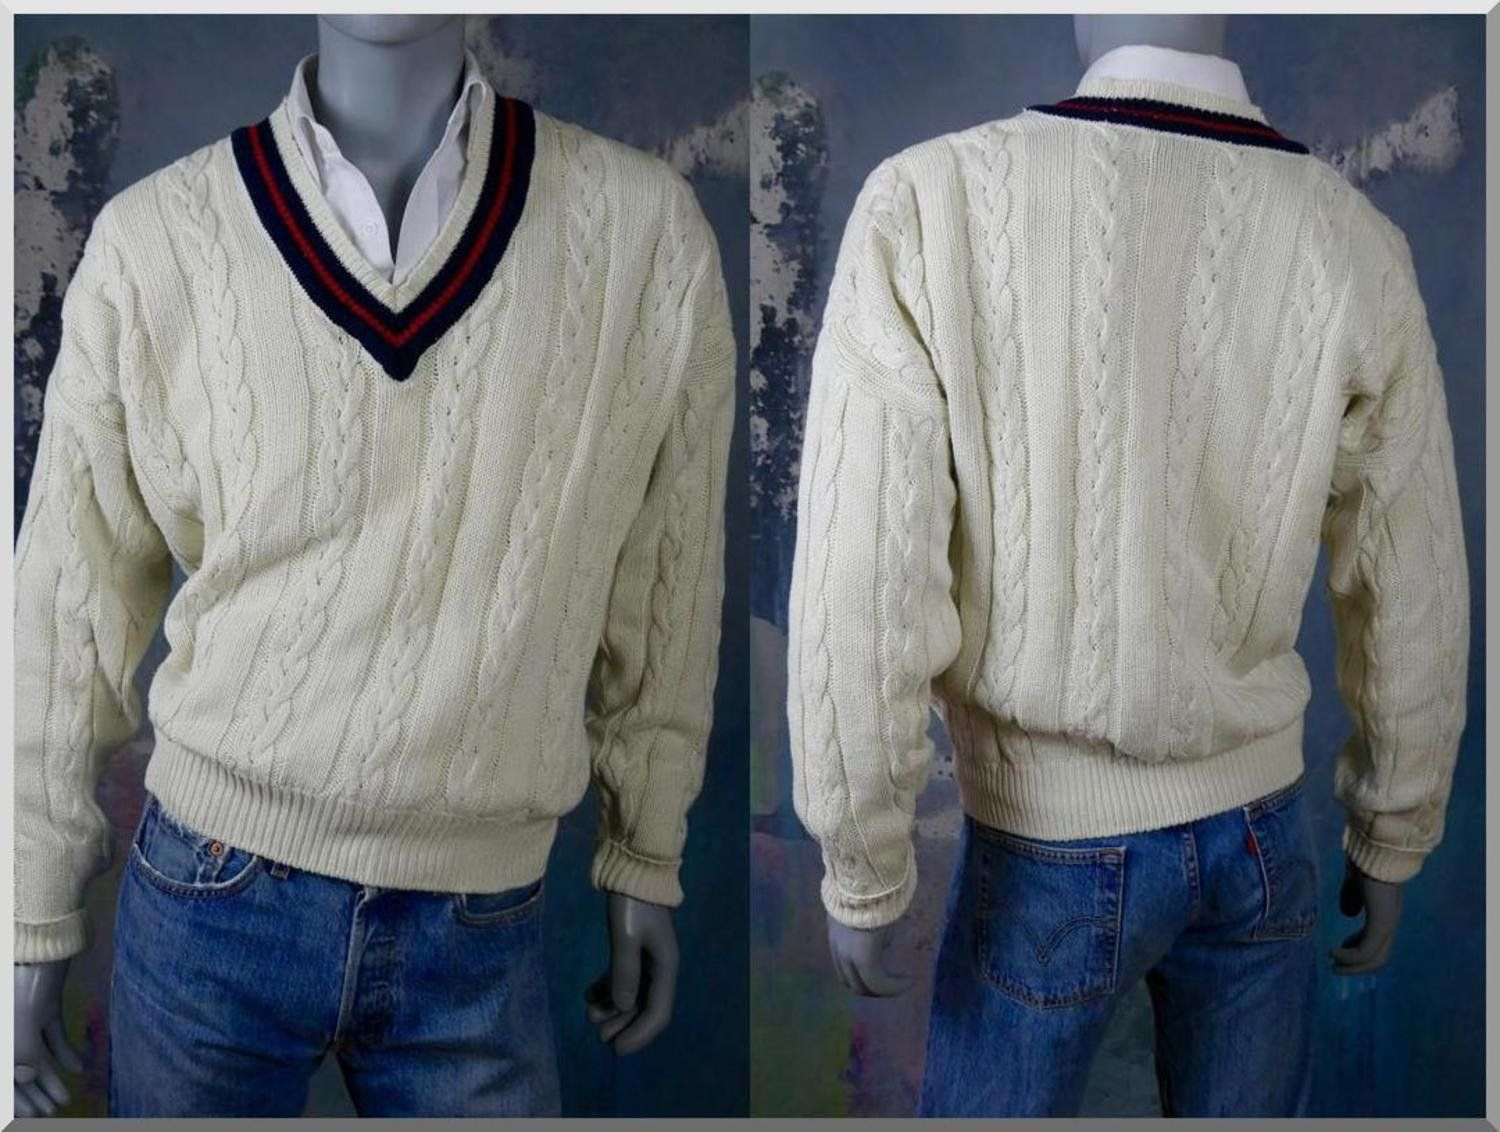 dbc2ee0404af British Cricket Sweater, Cream Cable Knit V-Neck Cotton Pullover Jumper w  Navy Blue & Red Striped Neckline: Size XXL (46 to 48 US/UK) by DownShifting  on ...